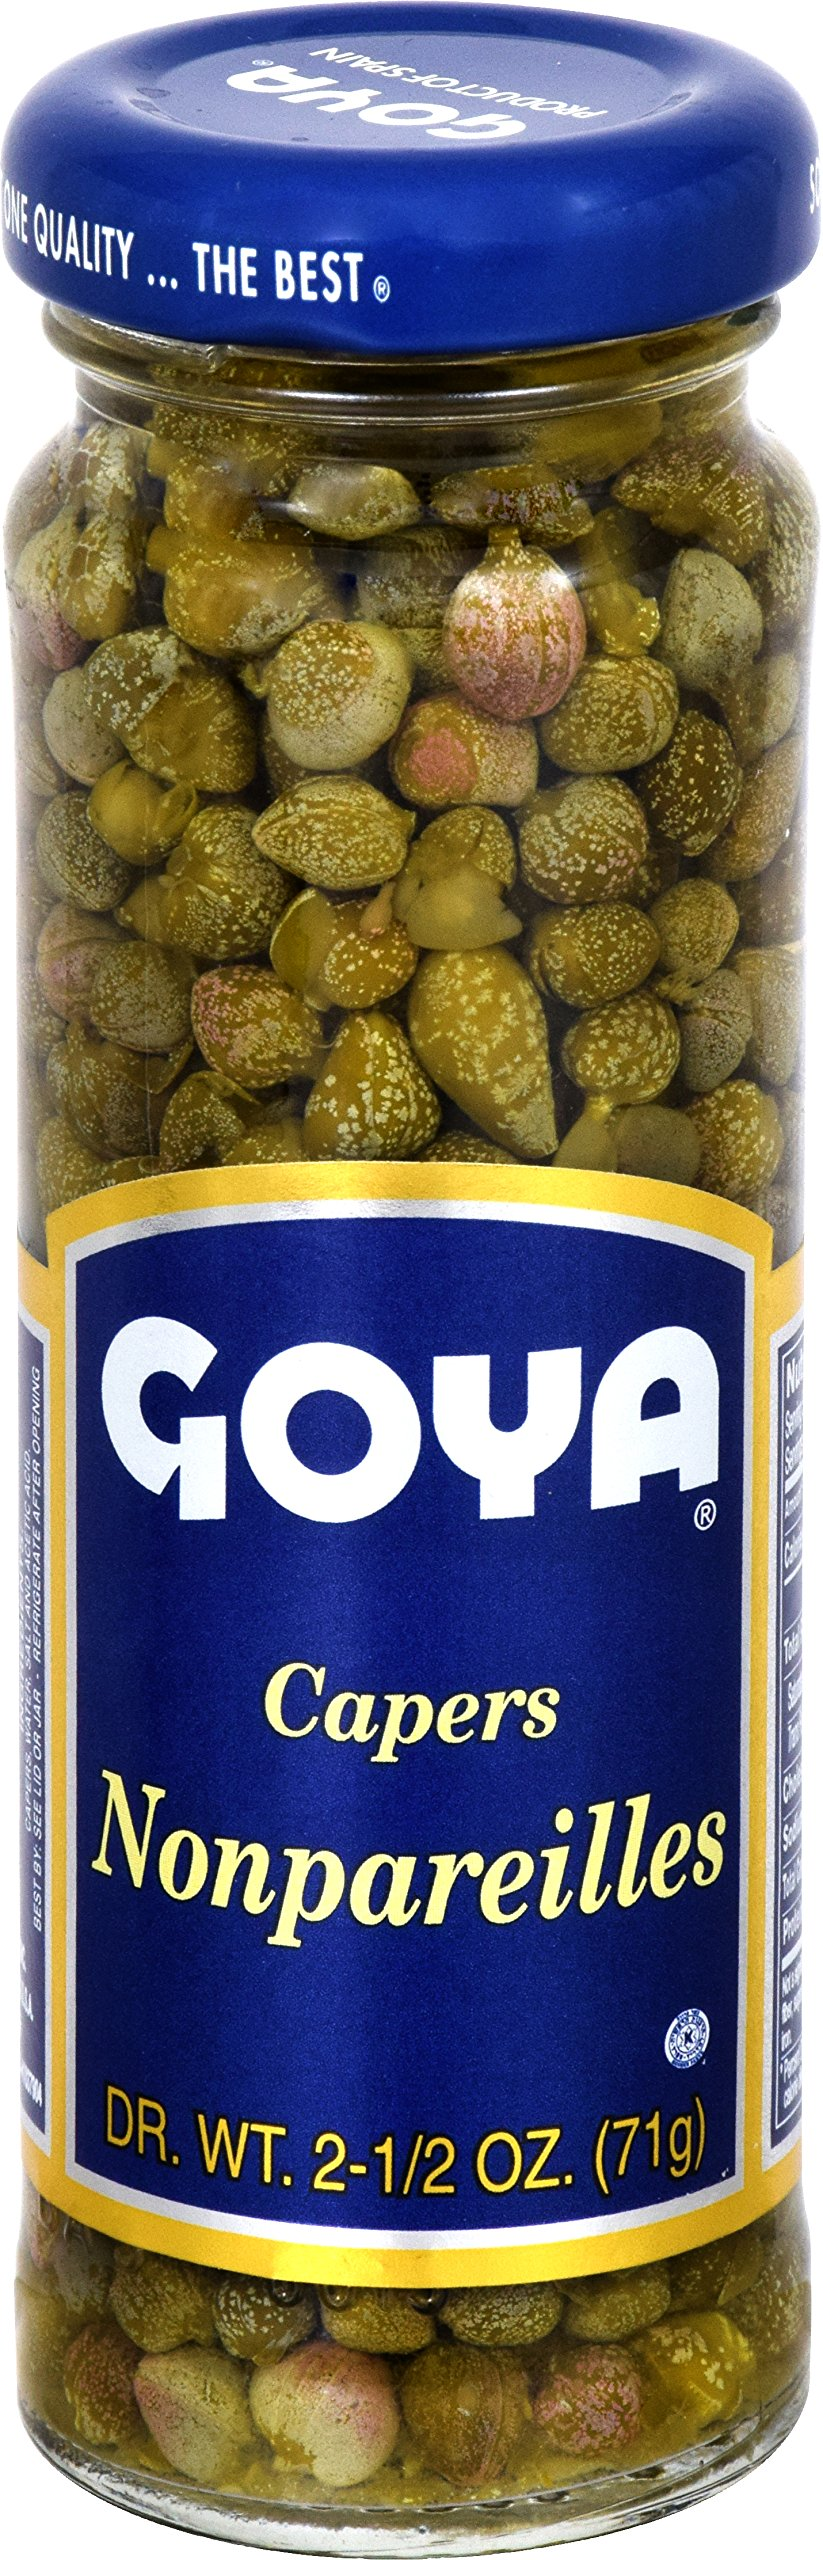 Goya Capers Nonpareilles, 2.5-Ounce Units (Pack of 12)